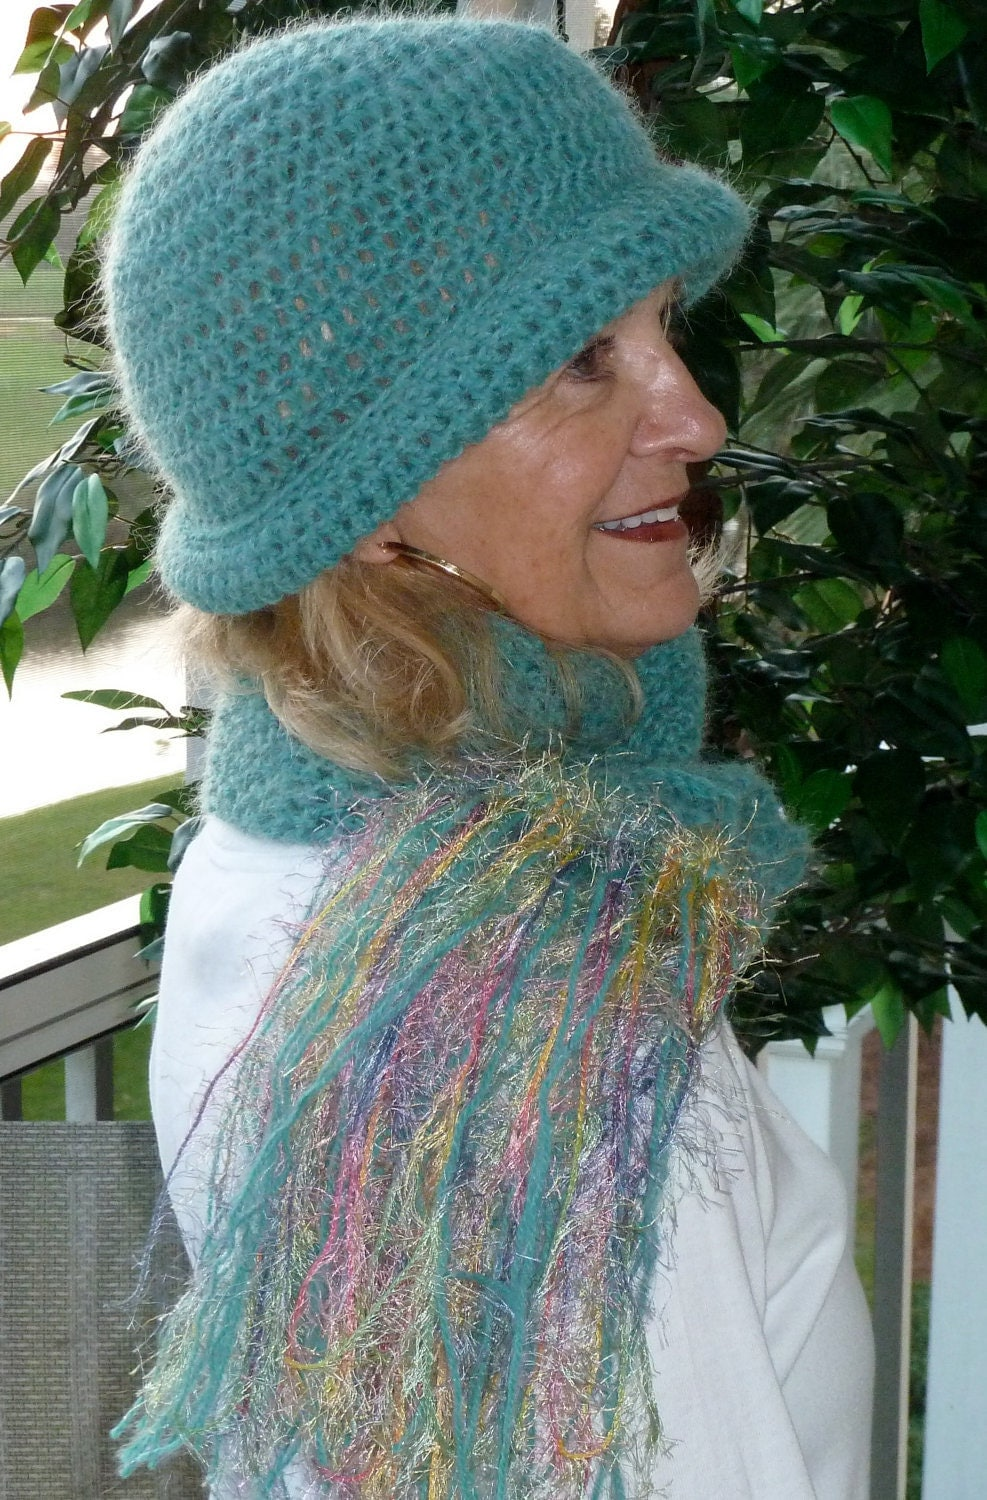 Crochet Hat and Scarf  Blue  Aquamarine  Winter Accessories Crochet Scarves And Hats